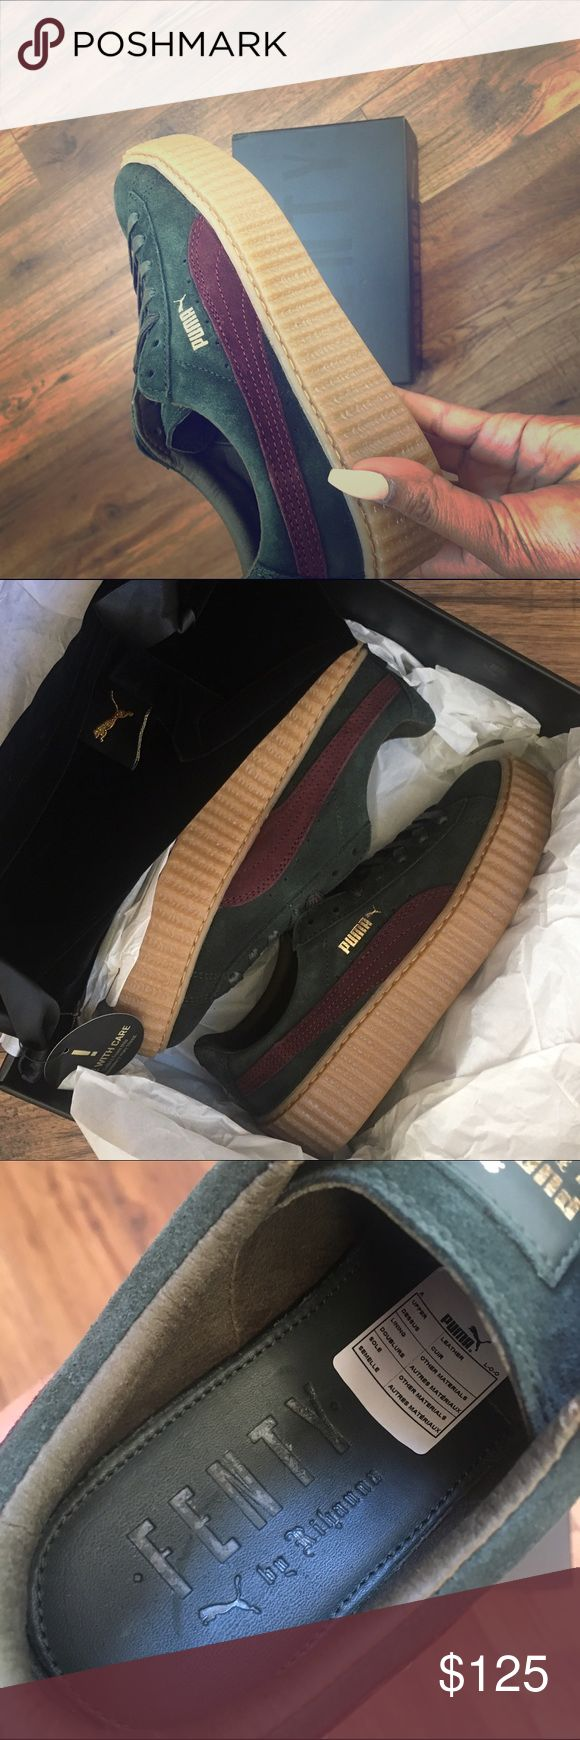 FENTY PUMA BY RIHANNA Suede Green-Bordeaux Creeper FENTY PUMA by Rihanna women's creeper , Green-Bordeaux-Gum 351005 07. Size US 7. Original packaging. Brand new. Never been worn. Shoe bag included. Puma Shoes Athletic Shoes